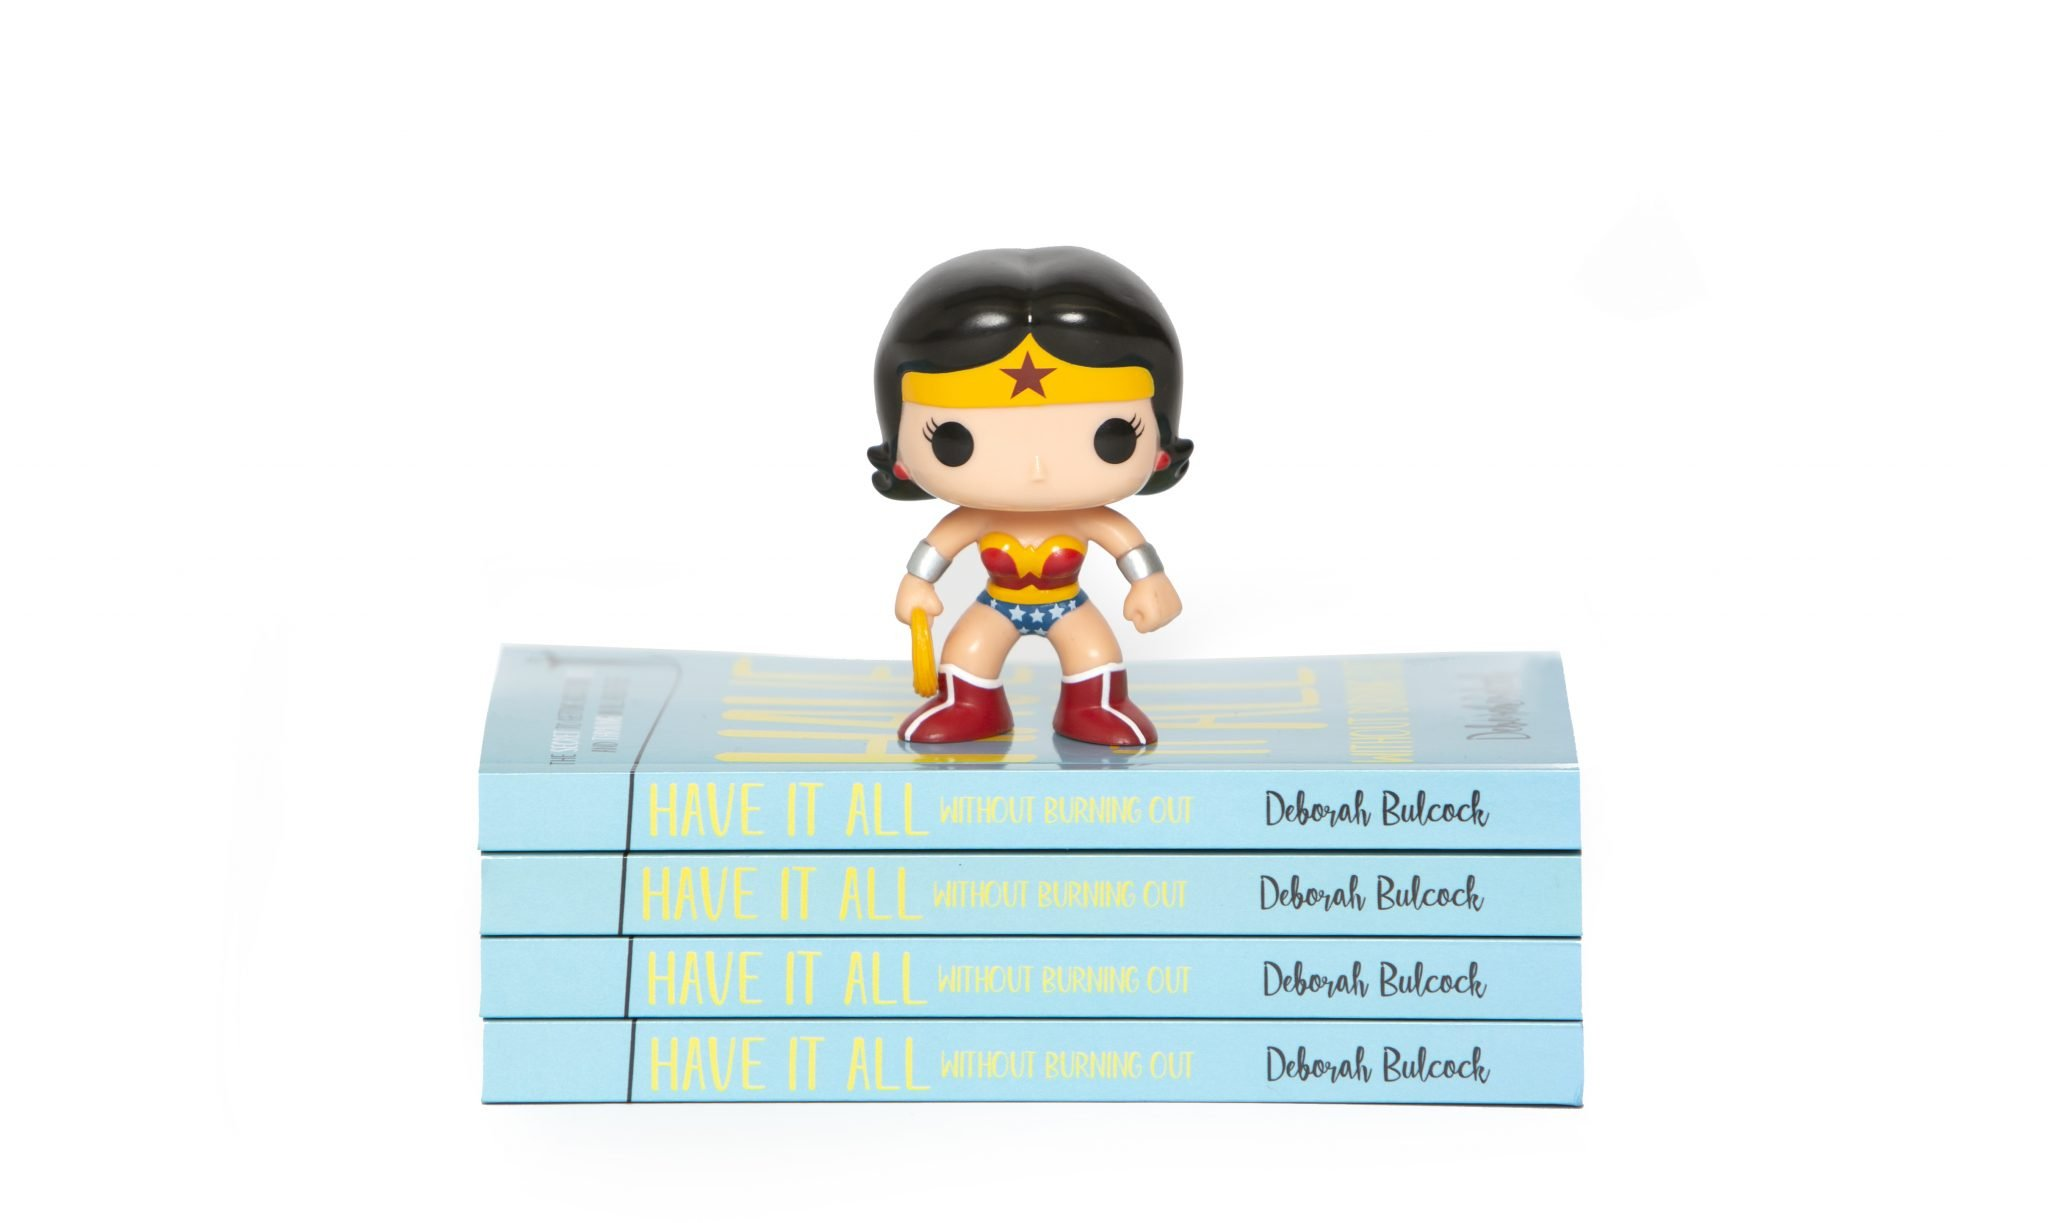 Wonder Woman action figure placed on top of the book 'Have It All Without Burning Out'